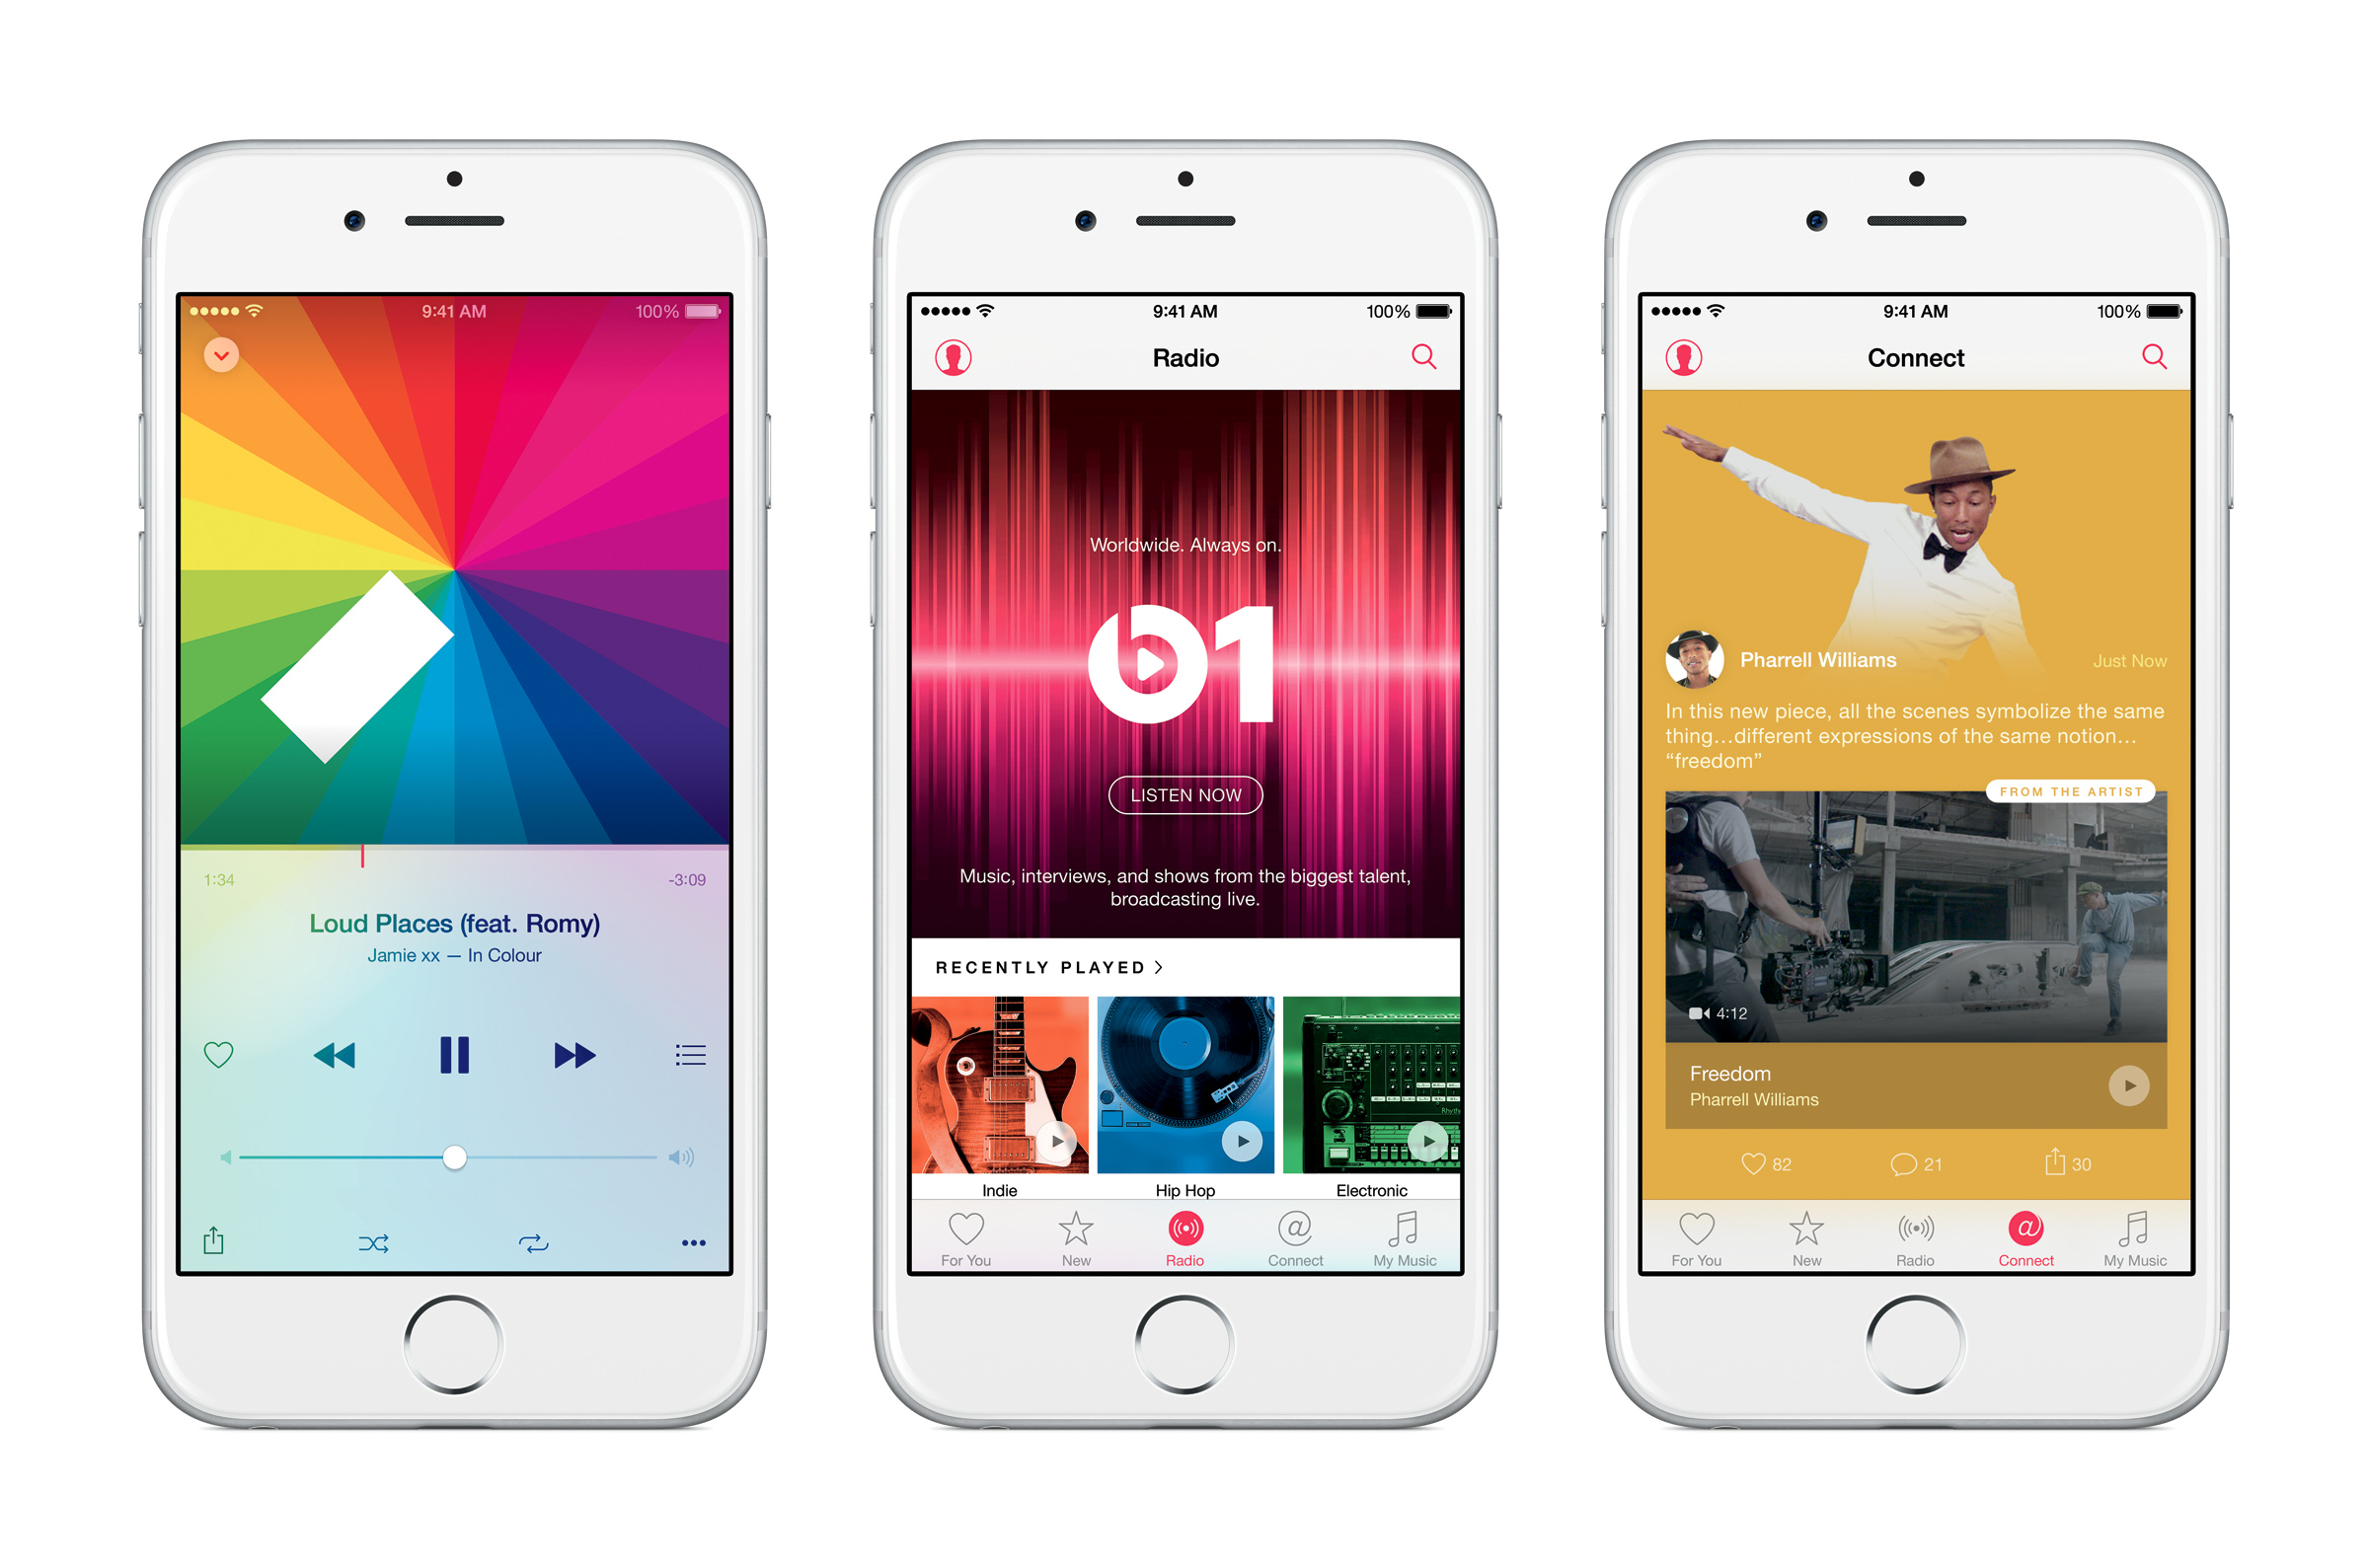 Apple Music for Android now plays music videos